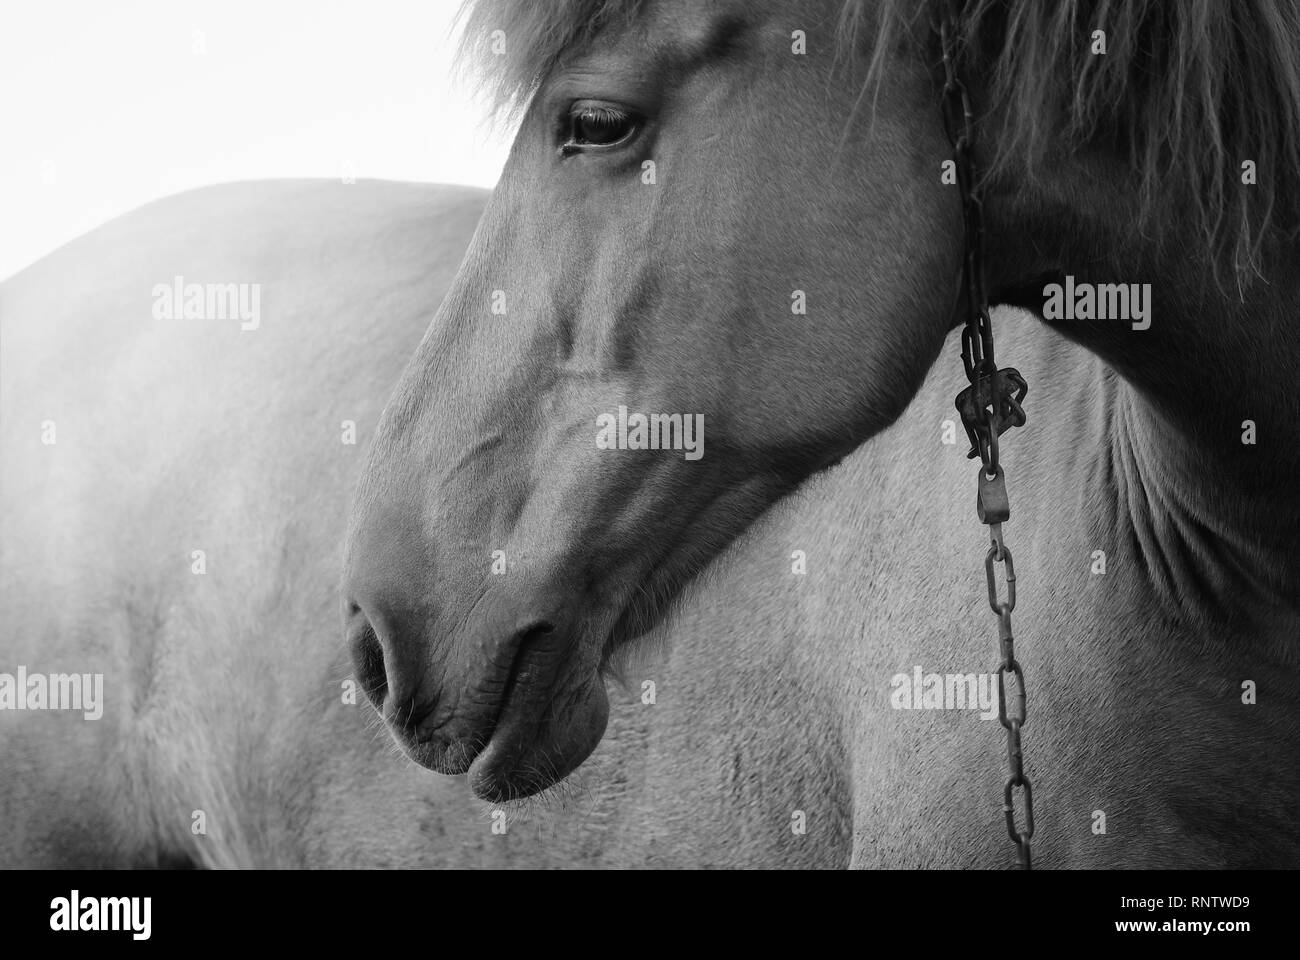 Portrait of a horse with chain. Black and white photo. - Stock Image